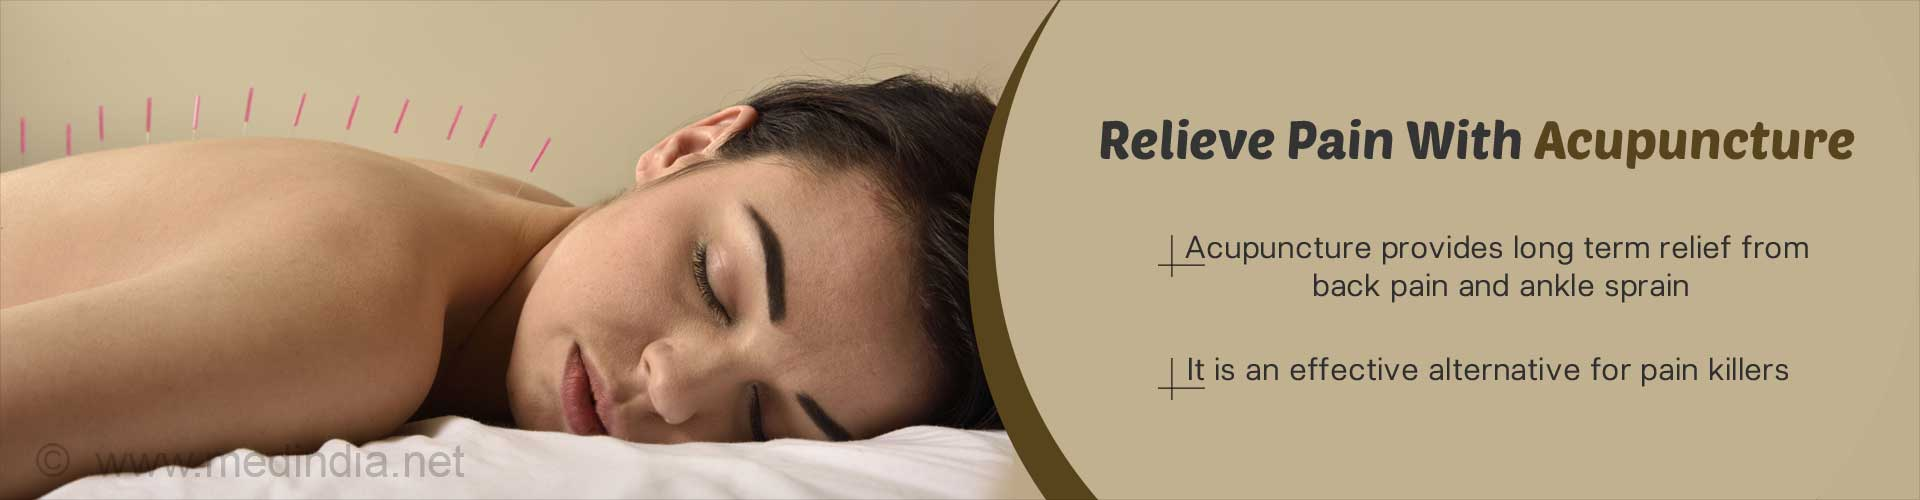 Relieve pain with acupuncture - Acupuncture provides long time relief from back pain and ankle sprain - It is an effective alternative for pain killers